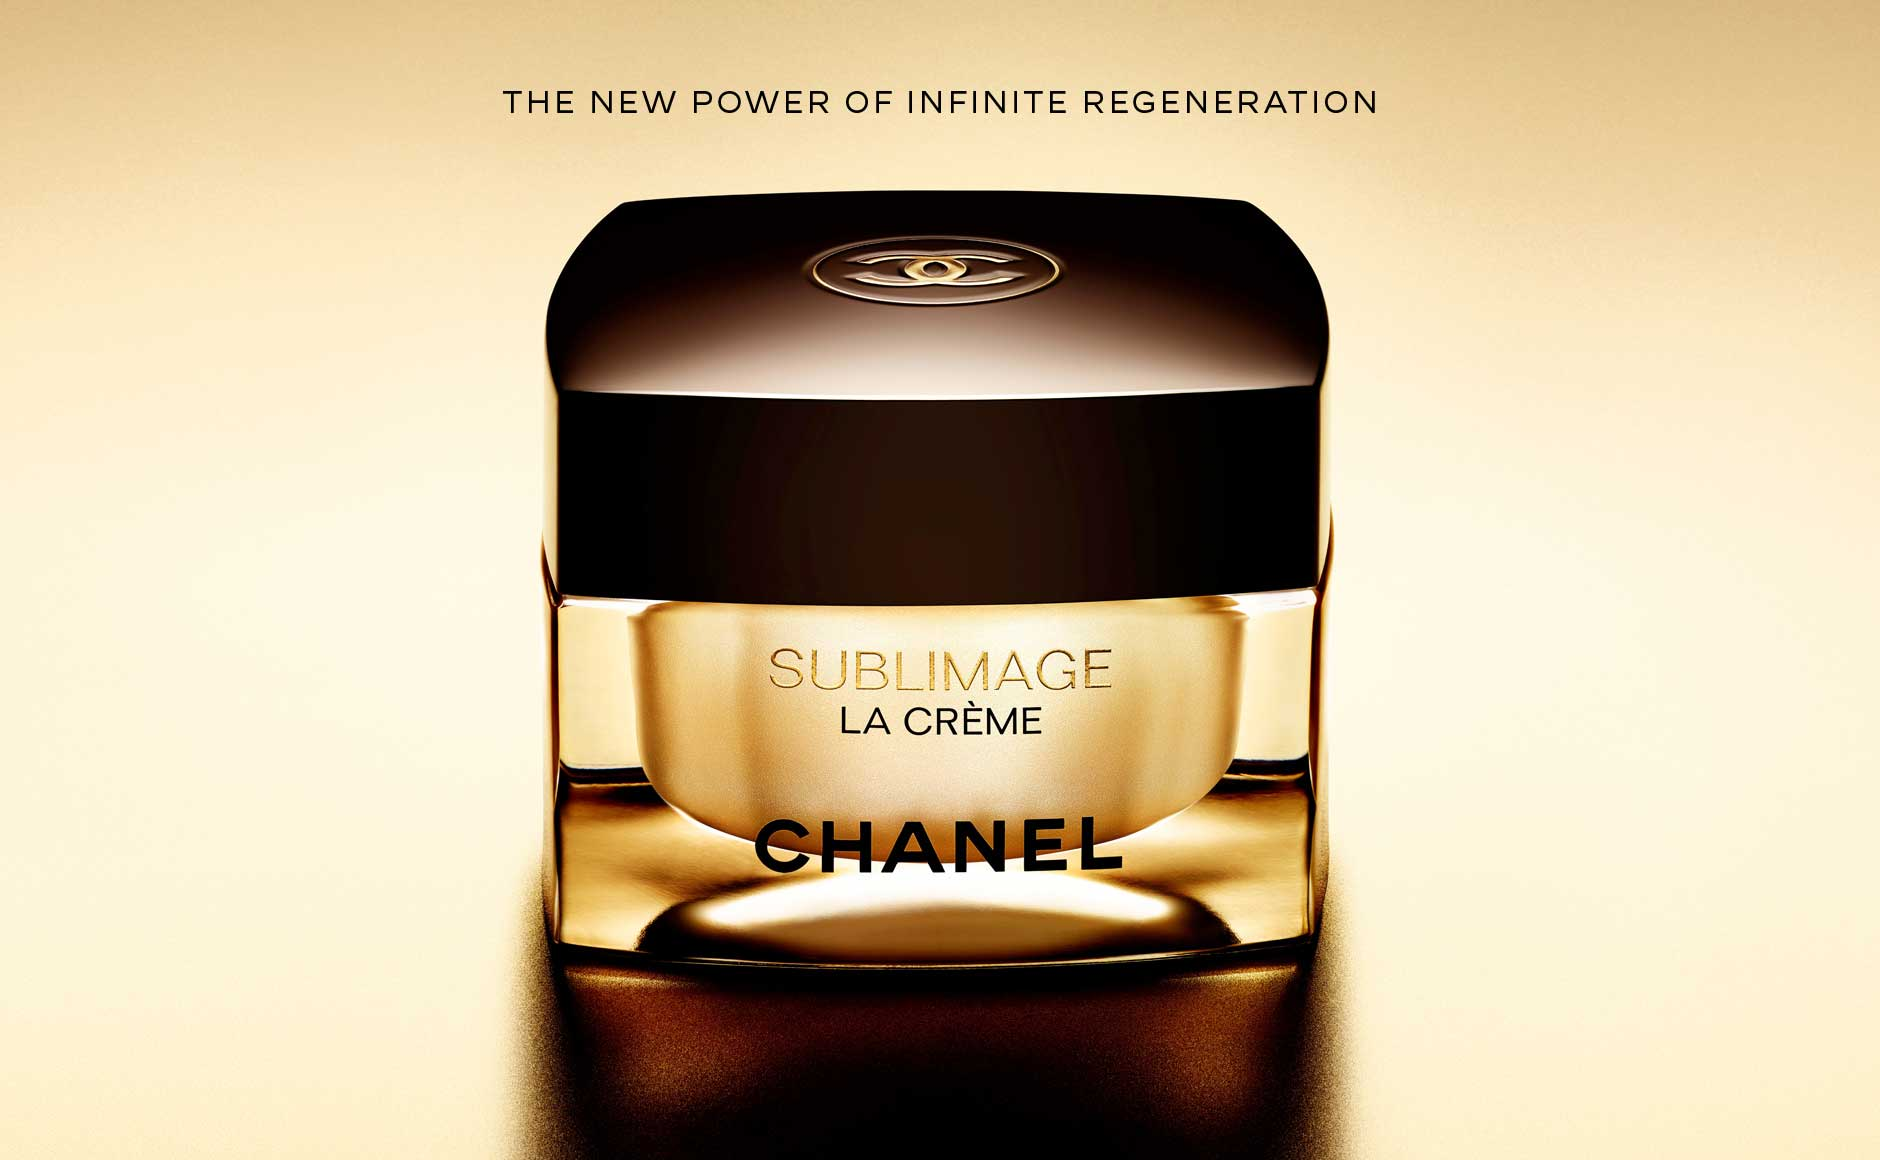 Chanel: Sublimage